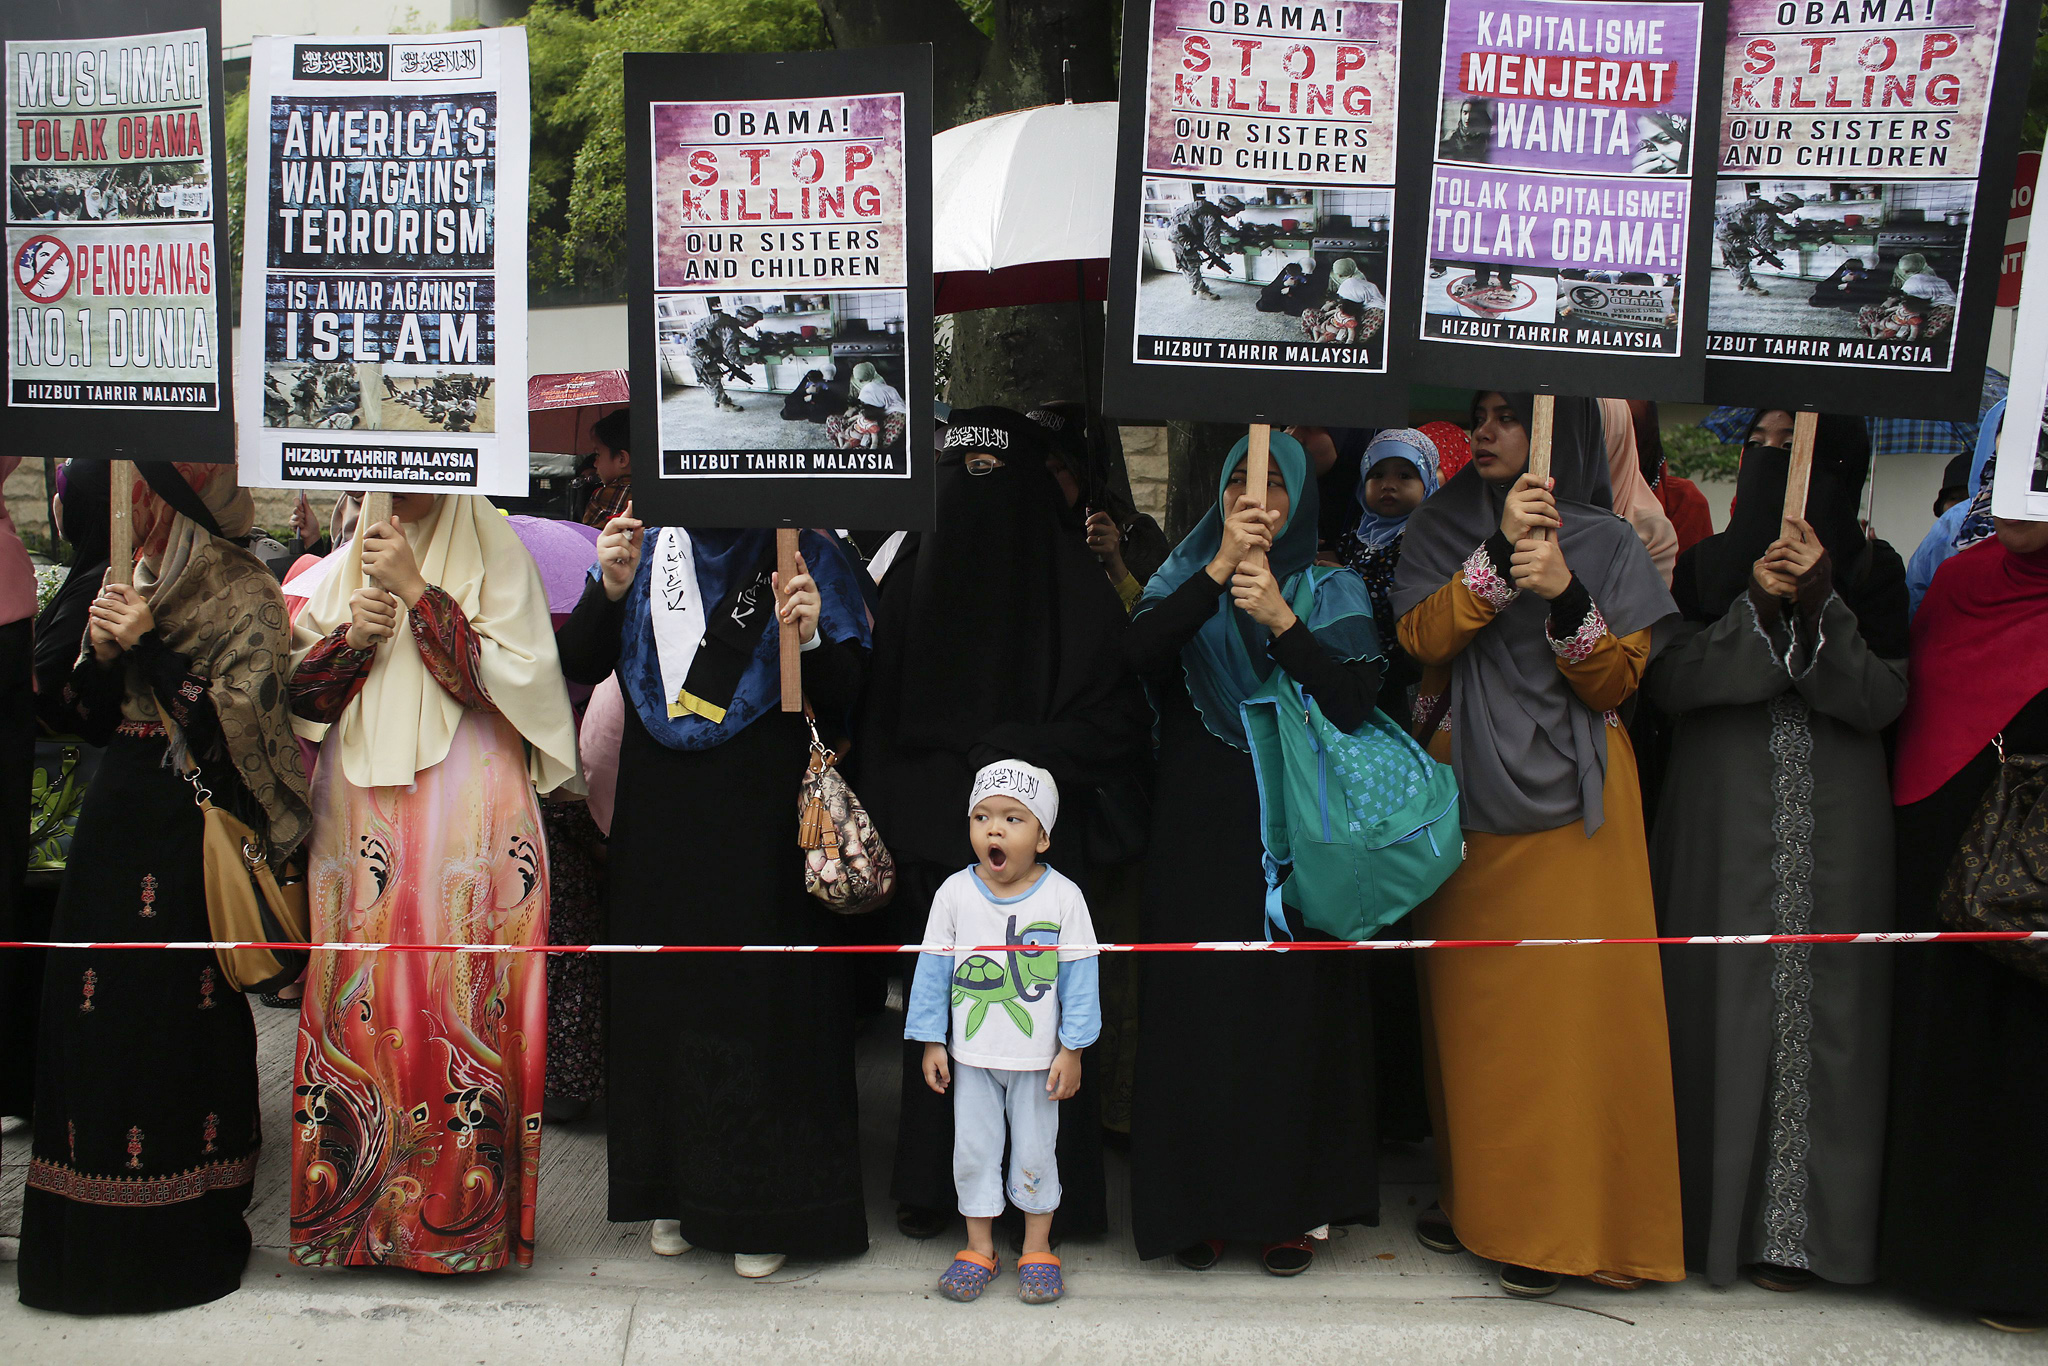 Malaysian Protest On US President Barrack Obama During ASEAN Summit...epa05022751 A child infront of protesters from Hizbut Tahrir Malaysia Islamic group holding placards during a protest in front of the US embassy in Kuala Lumpur, Malaysia, 13 November 2015. Hizbut Tahrir Malaysia labelled Obama as an 'enemy' of Islam, citing the deaths of Muslims in Iraq, Afghanistan, as well as in the ongoing Syrian conflict, which they blame on the US Presidentís administration  EPA/FAZRY ISMAIL